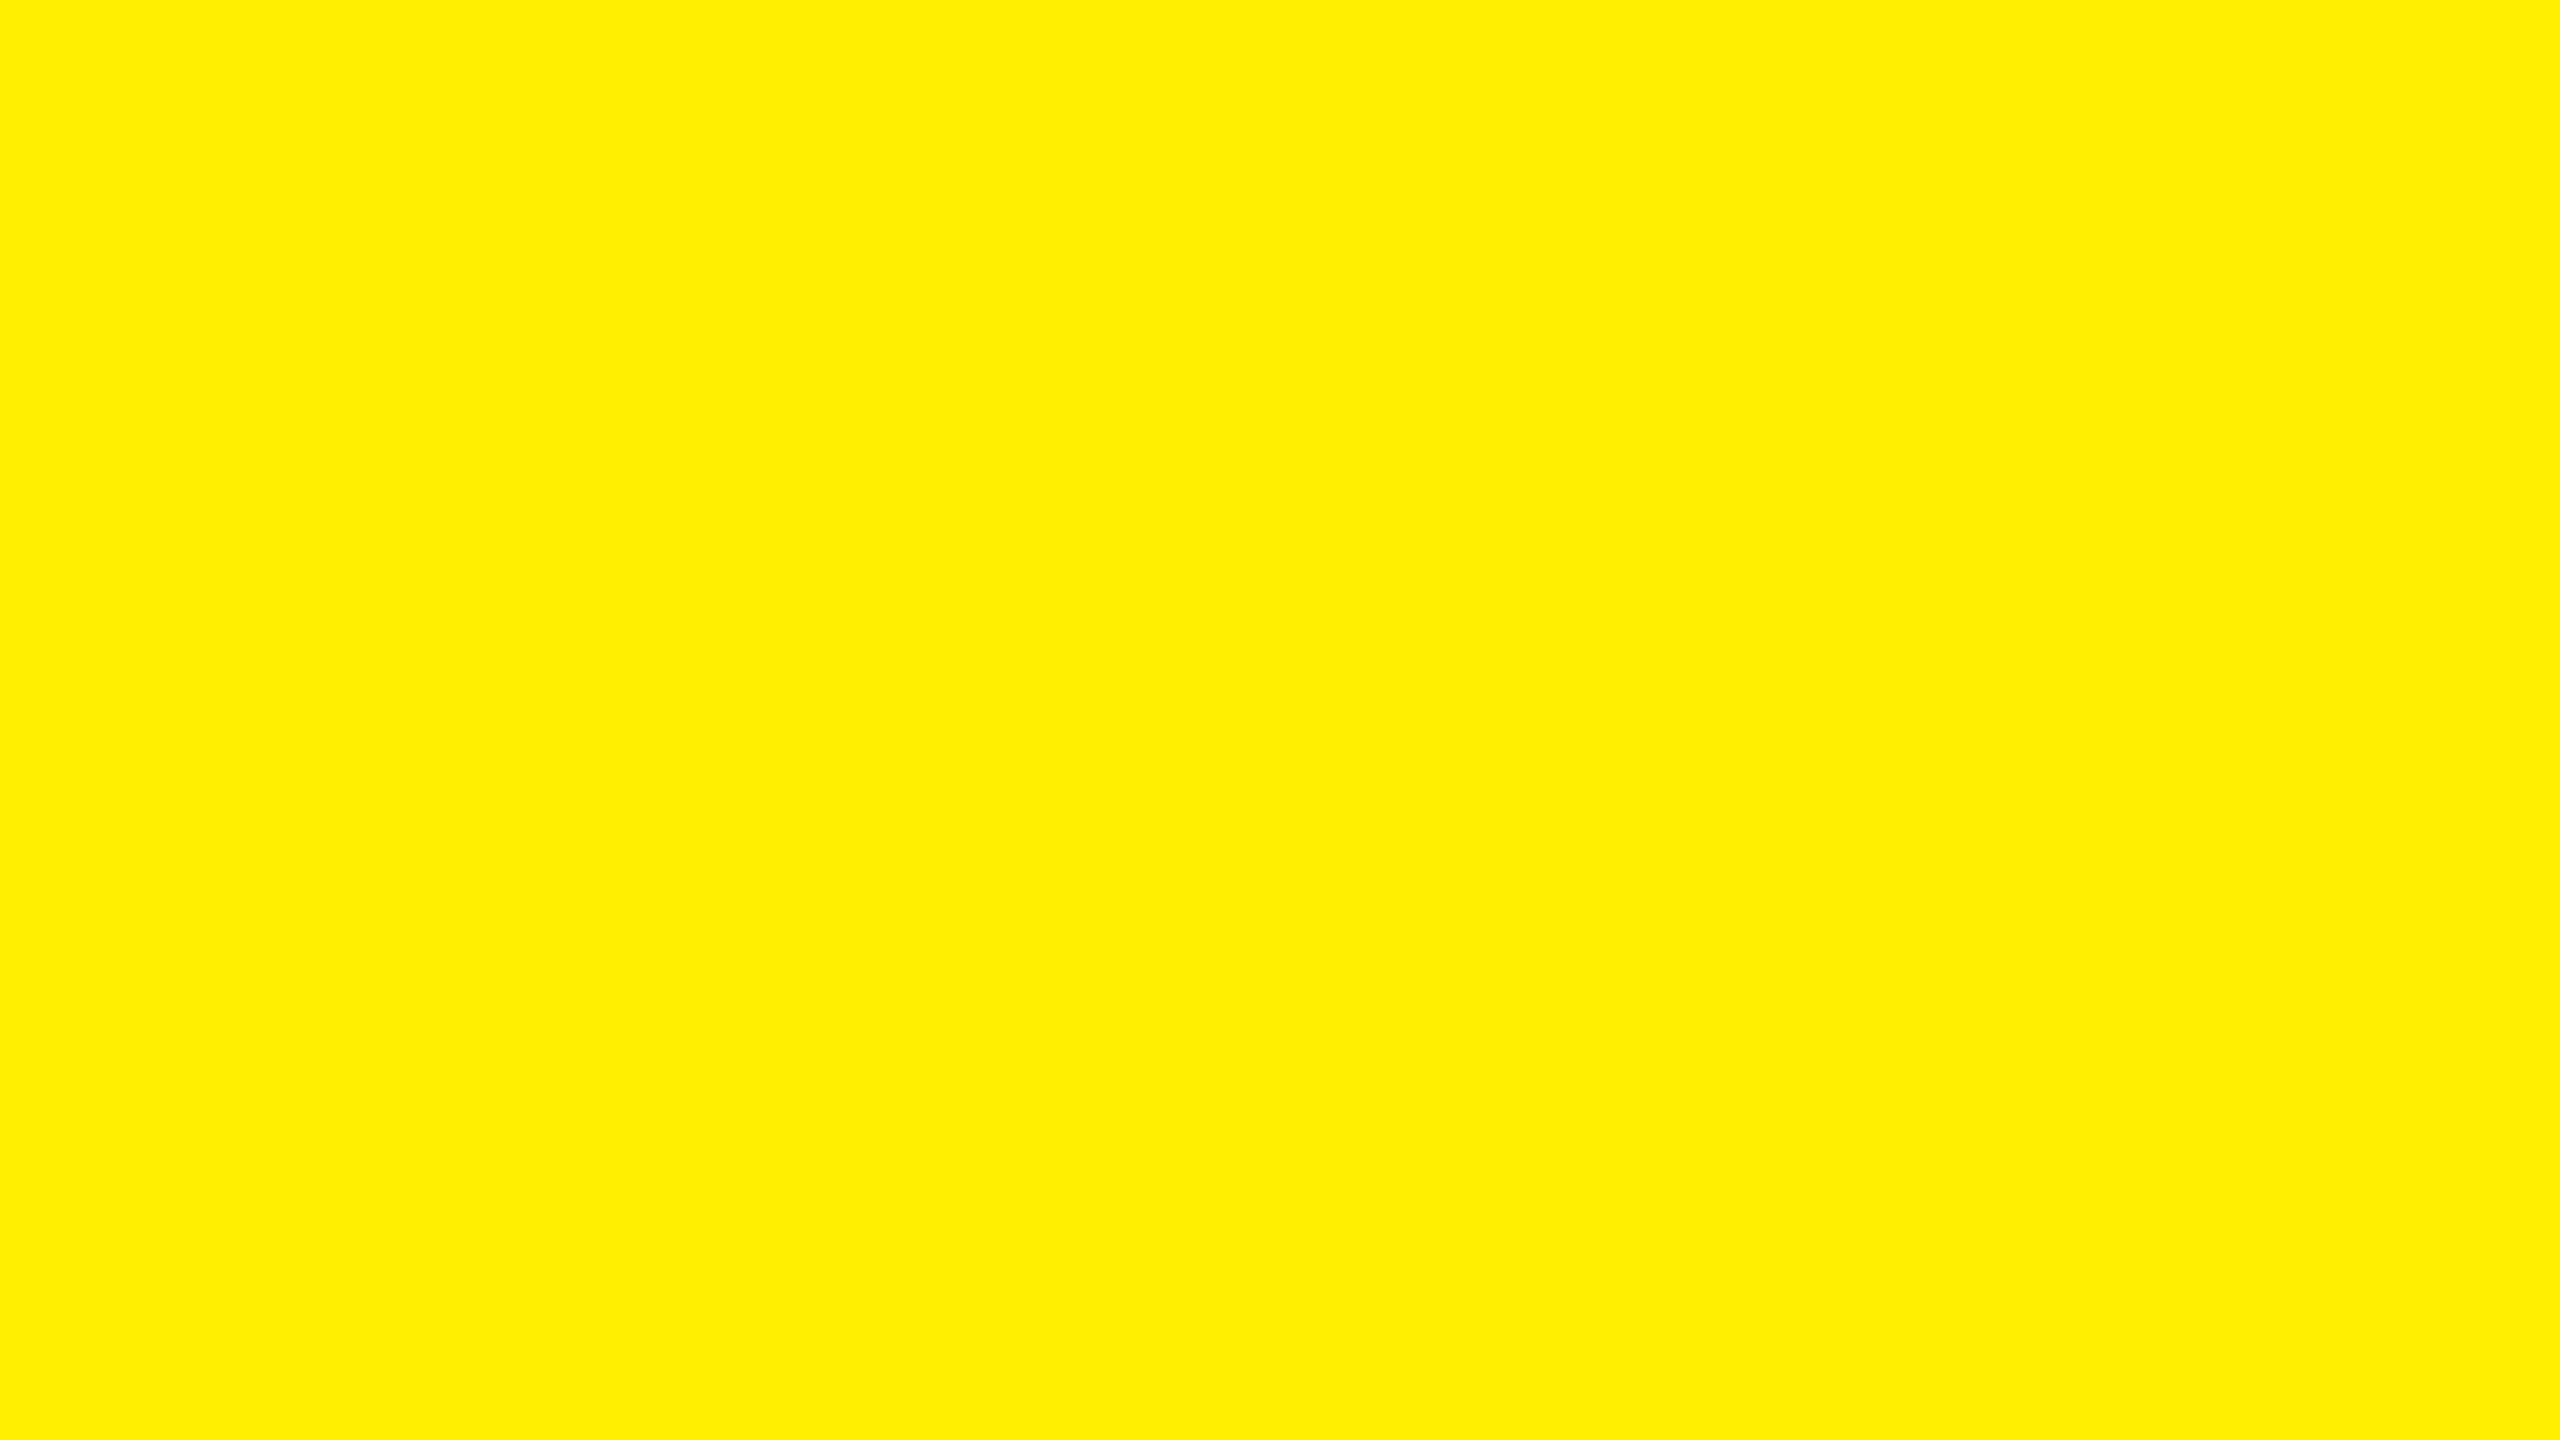 2560x1440 Canary Yellow Solid Color Background